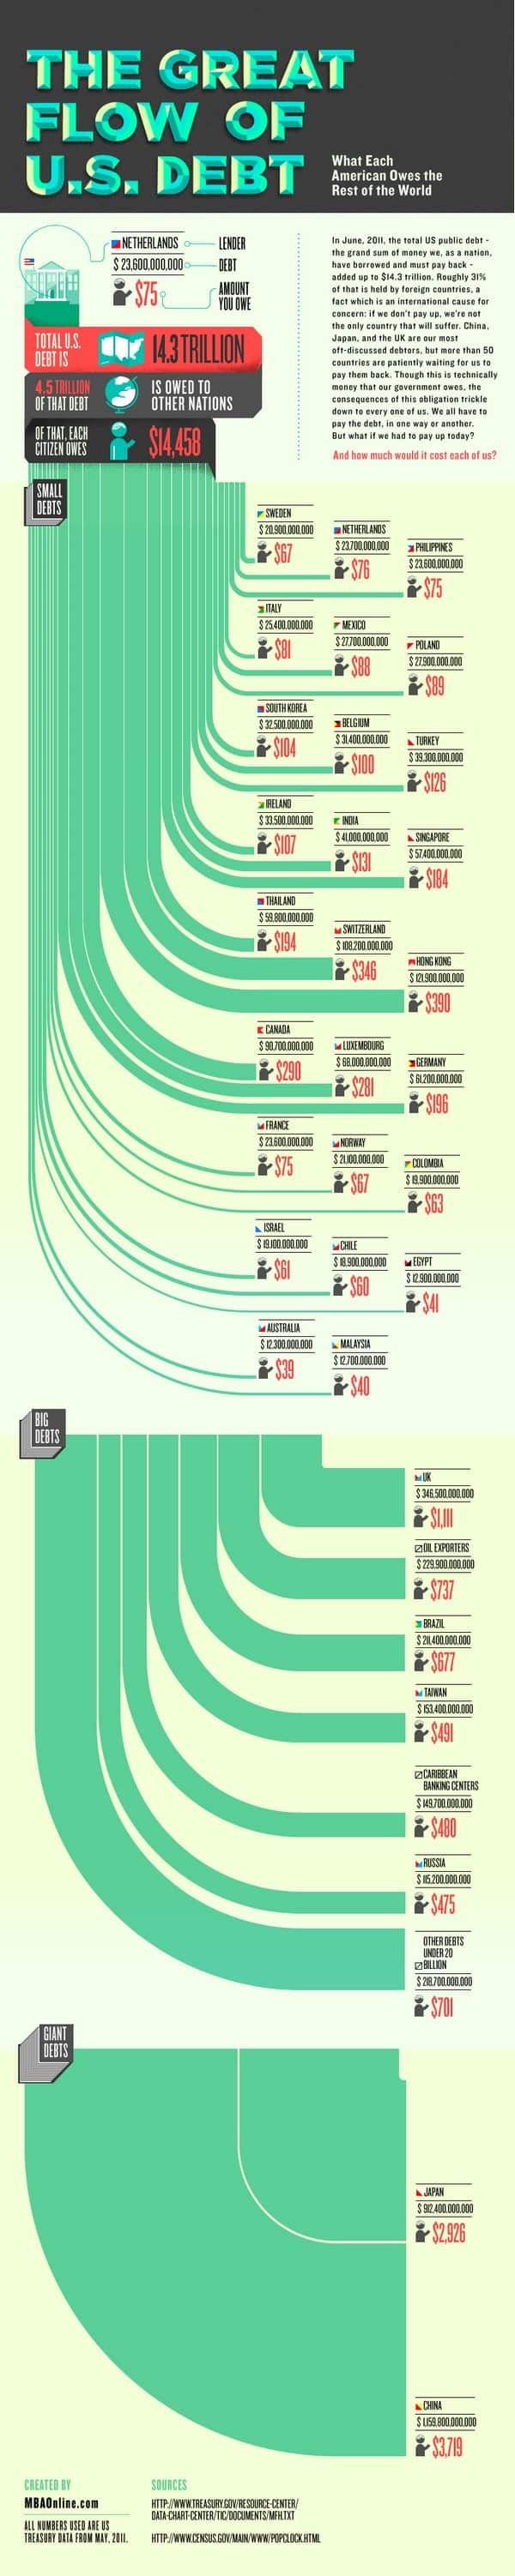 The Great Flow of US Debt Infographic